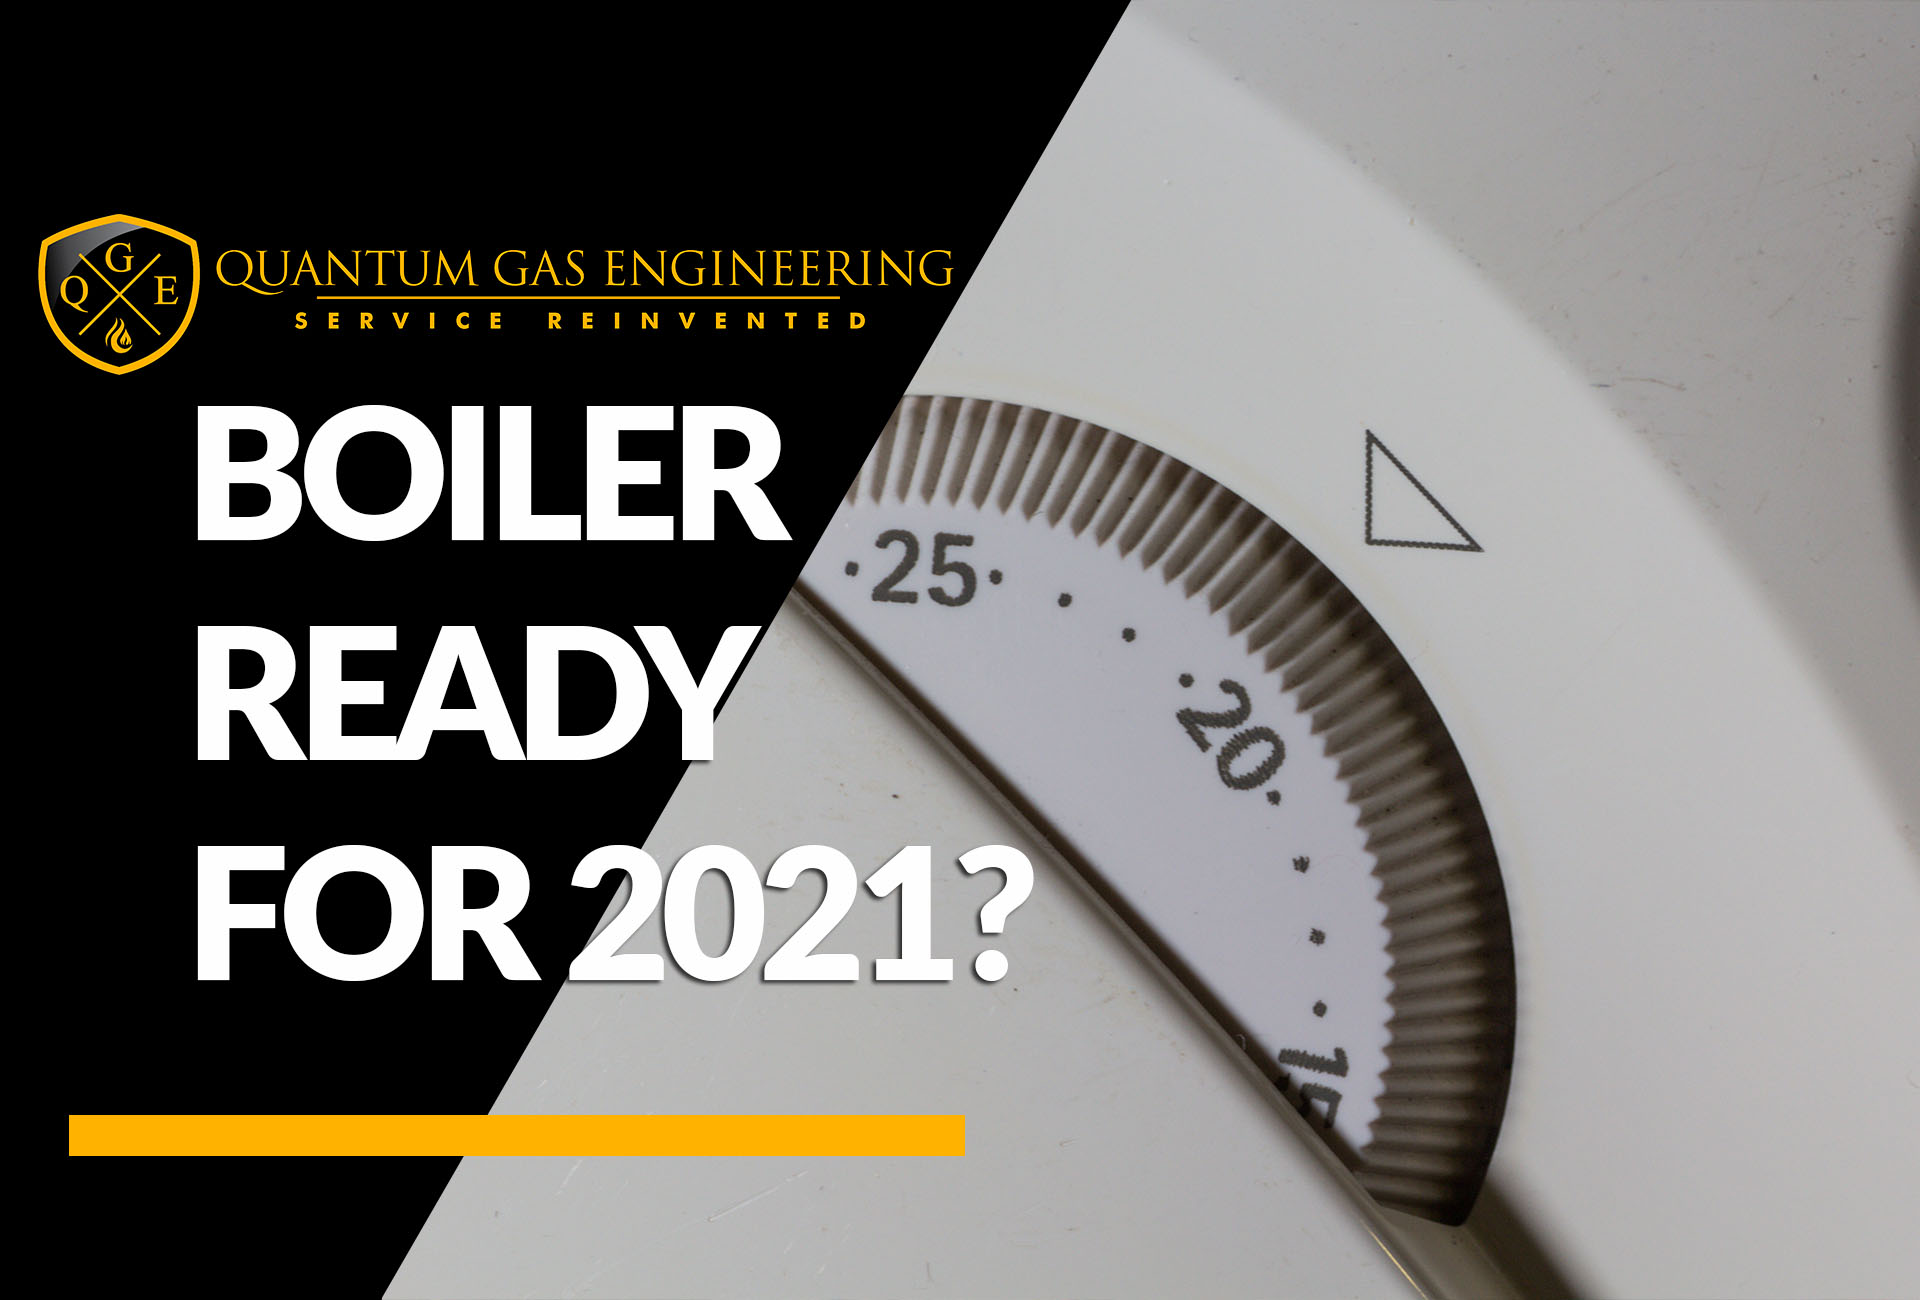 Is your boiler ready for 2021?